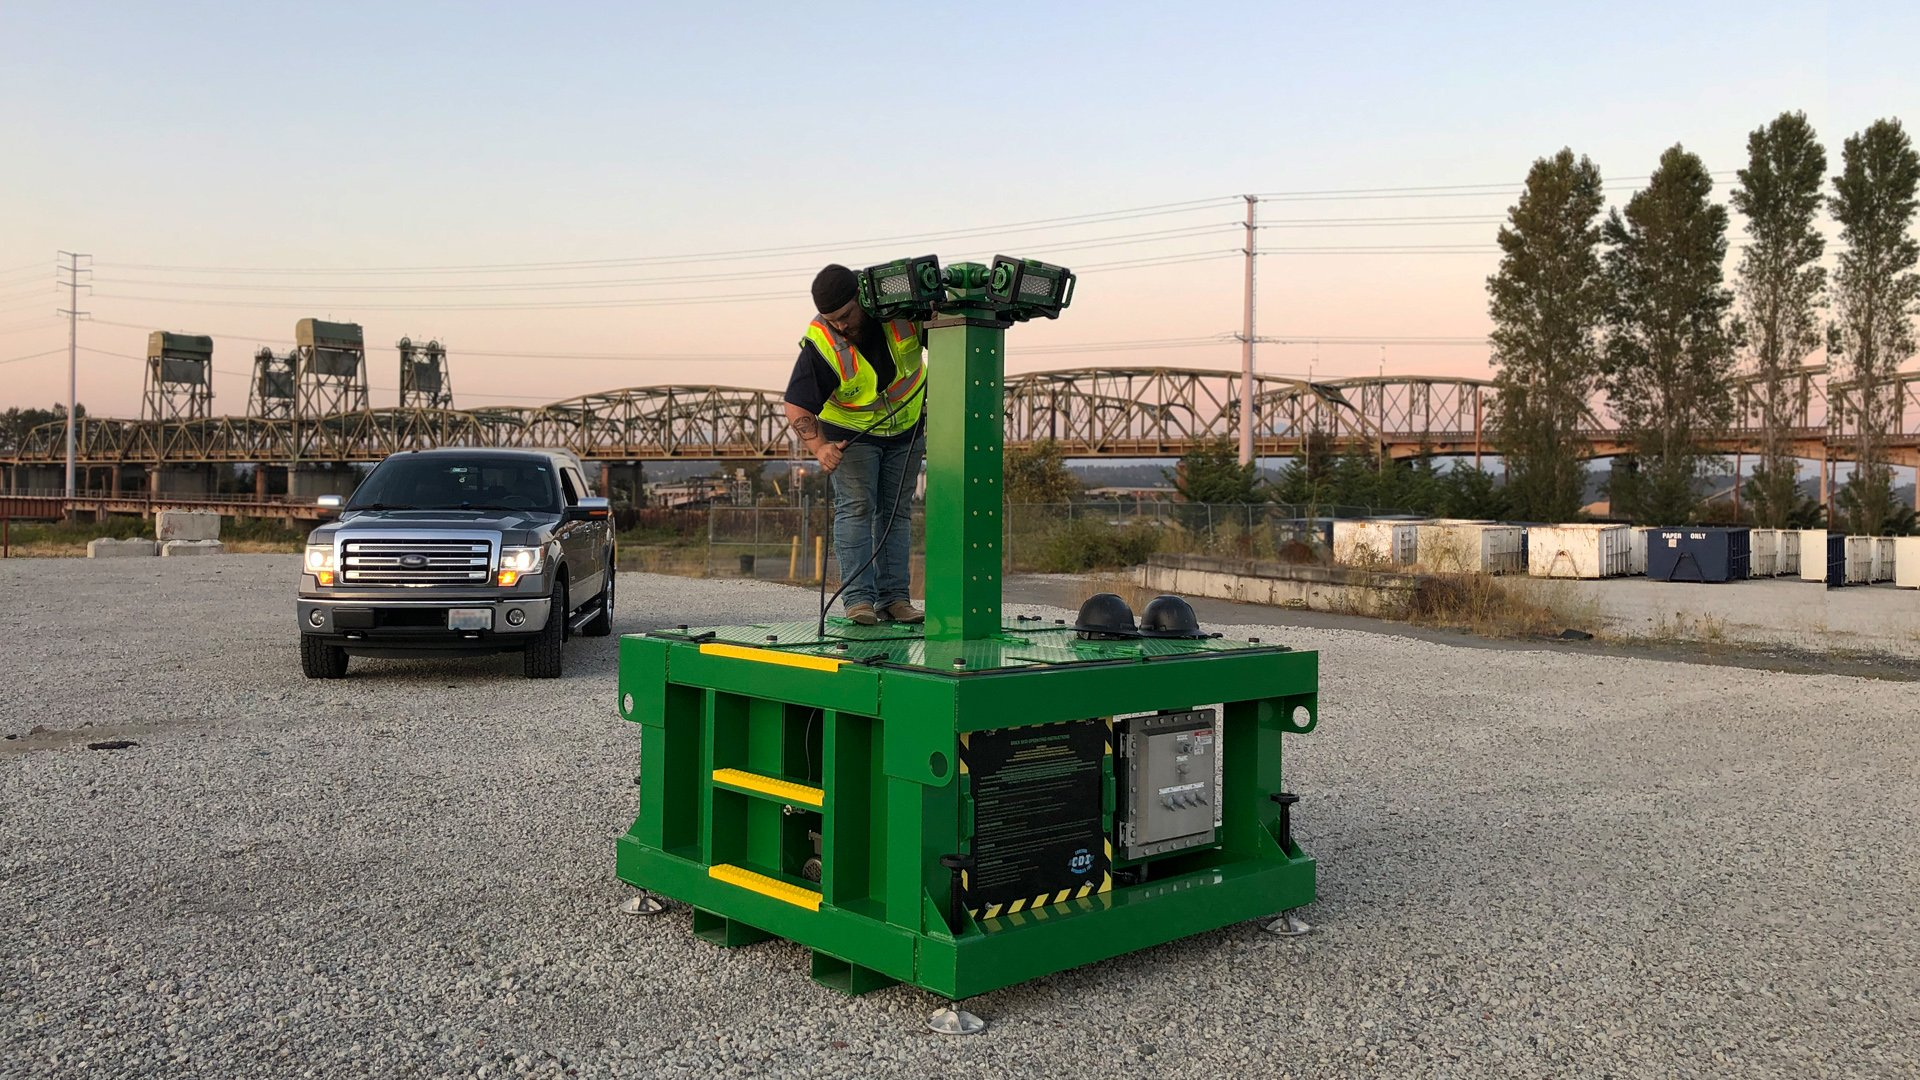 BRICKSkid, brick skid, zero-emissions, spark free construction, portable, explosion proof, led, light tower, explosion proof light tower